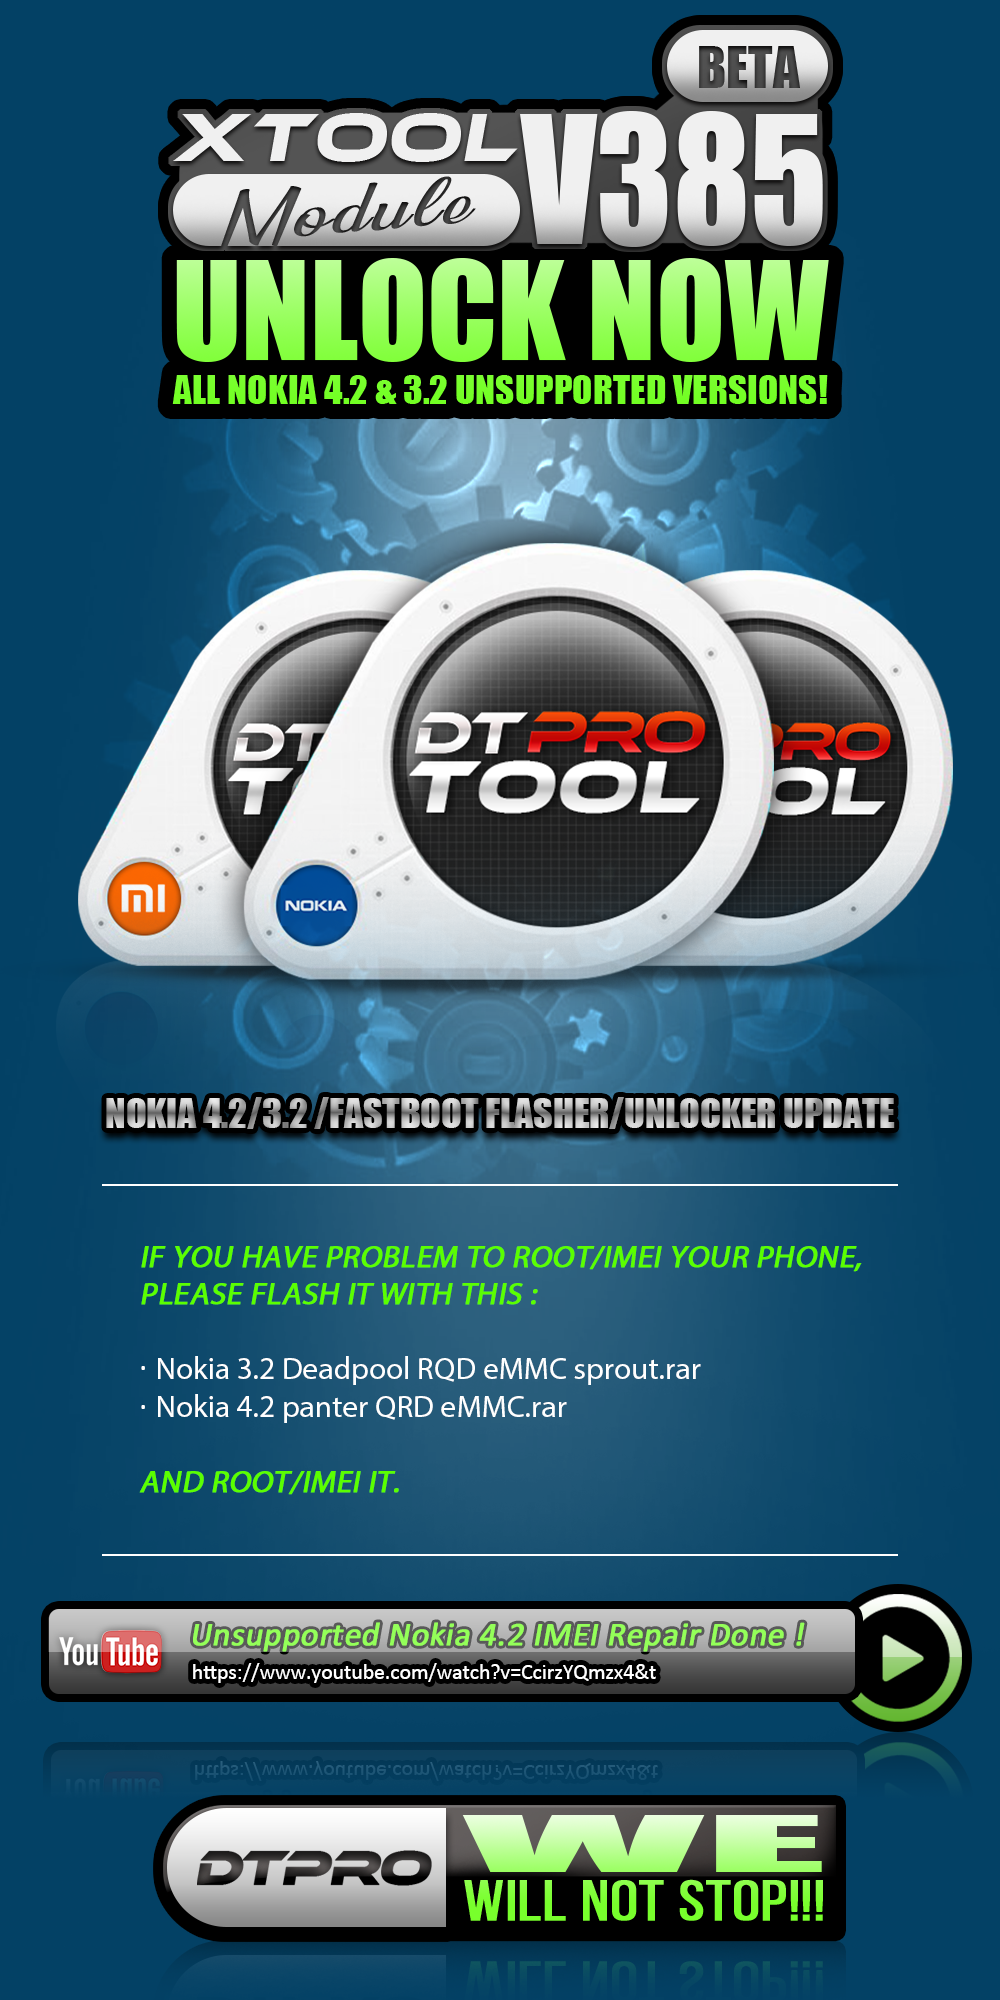 Xtool Software Version 2.0.0.0.385 Nokia DownGrade & Xiaomi repair Security